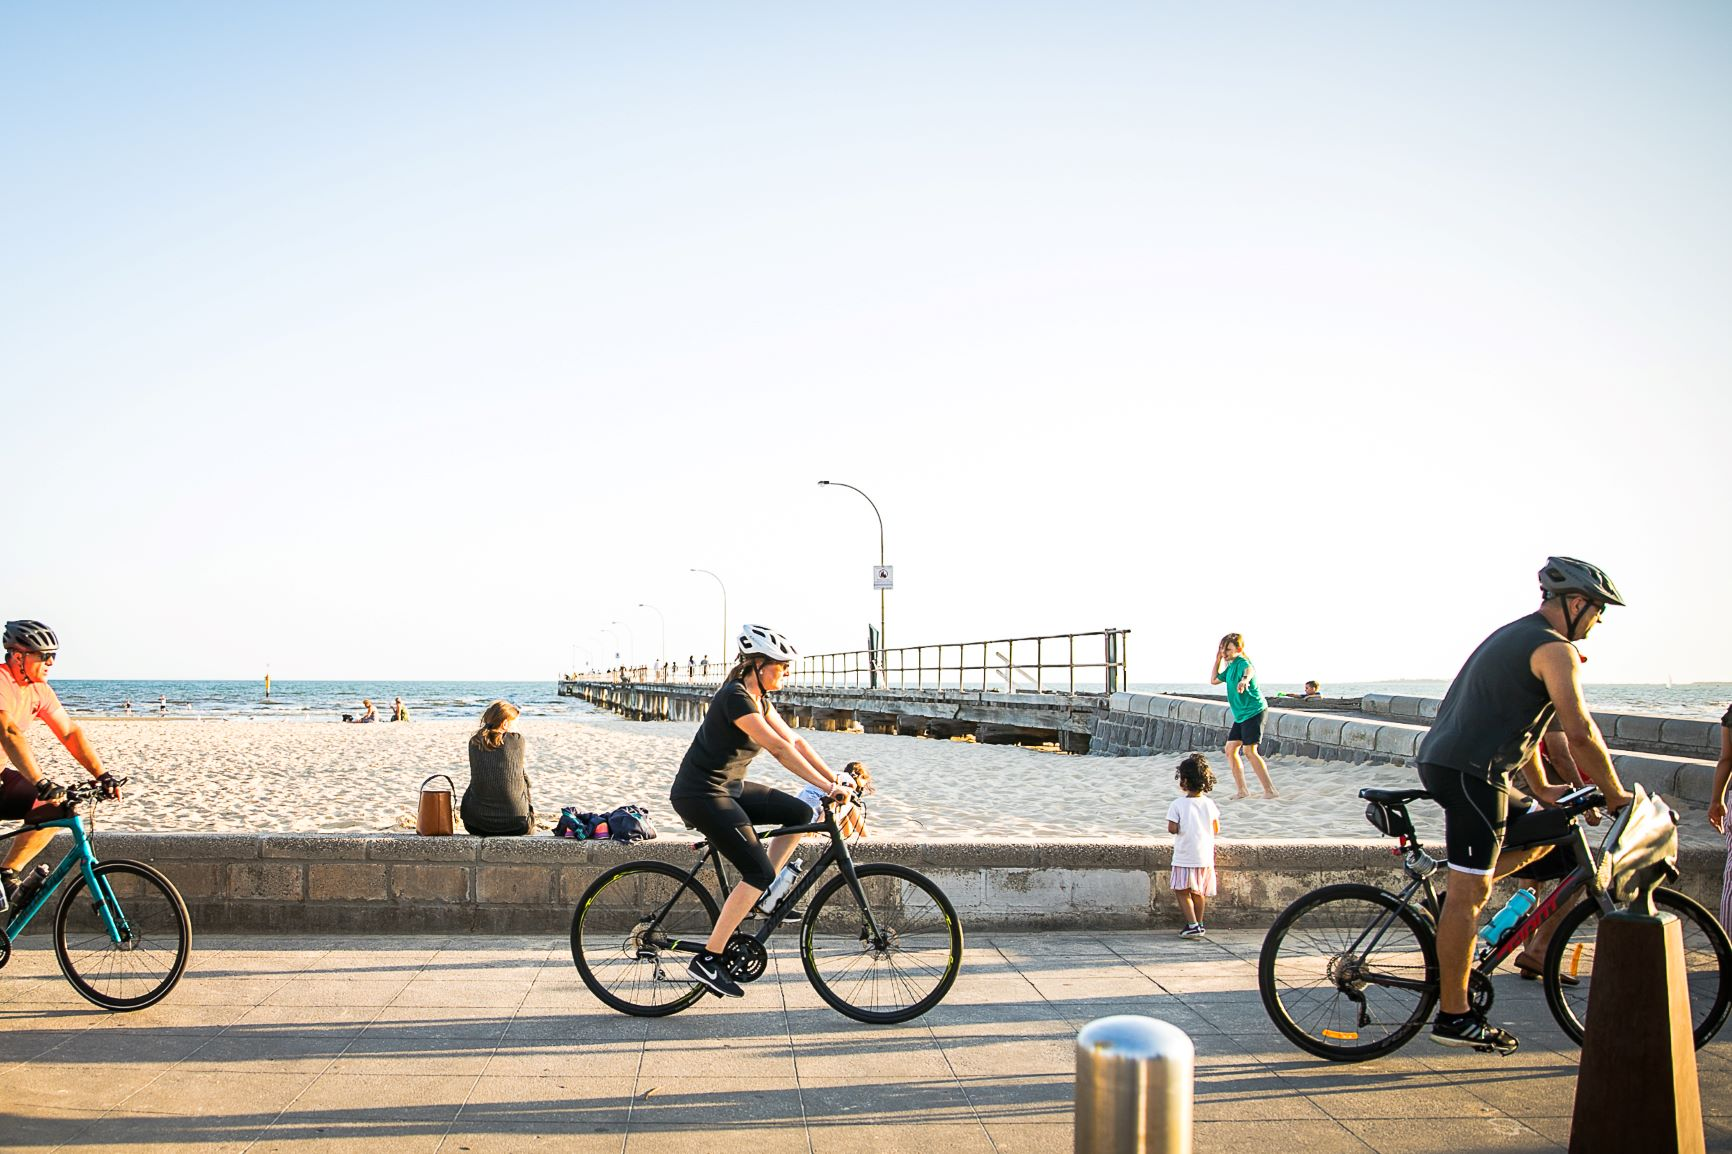 Cycling Pier Street Altona Beach for web.jpg